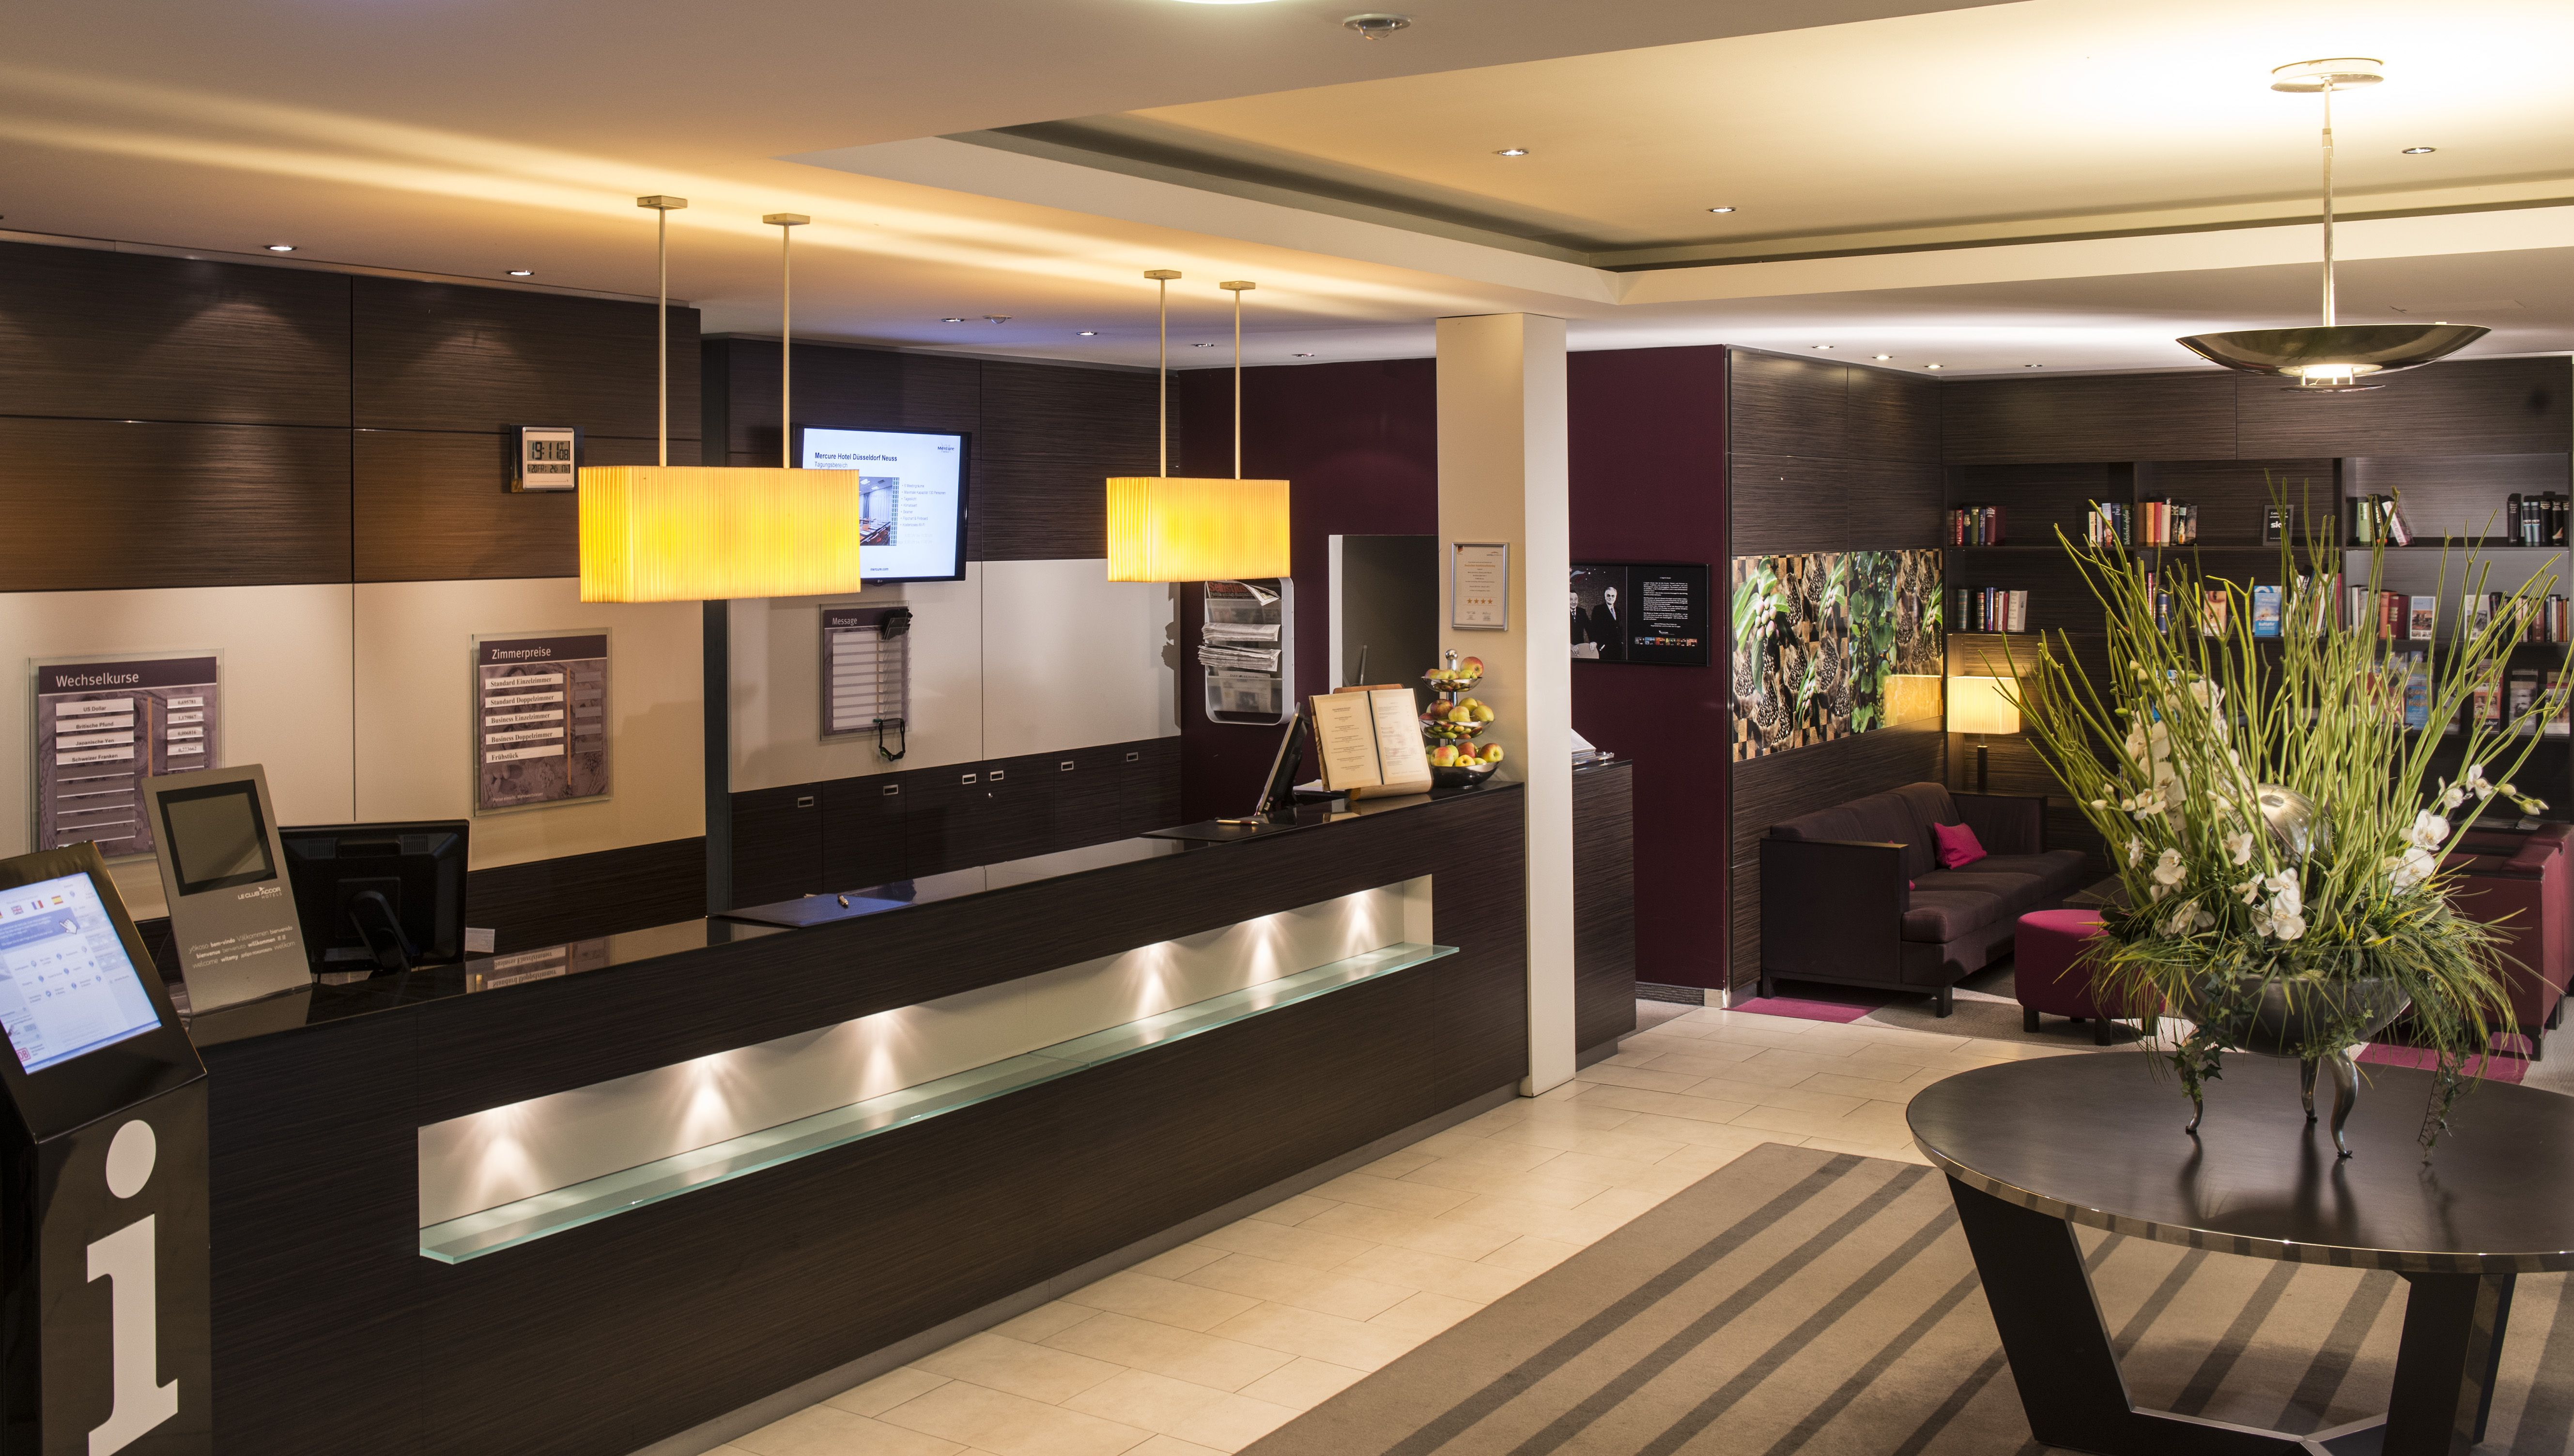 The Mercure Hotel Düsseldorf Neuss is centrally located at